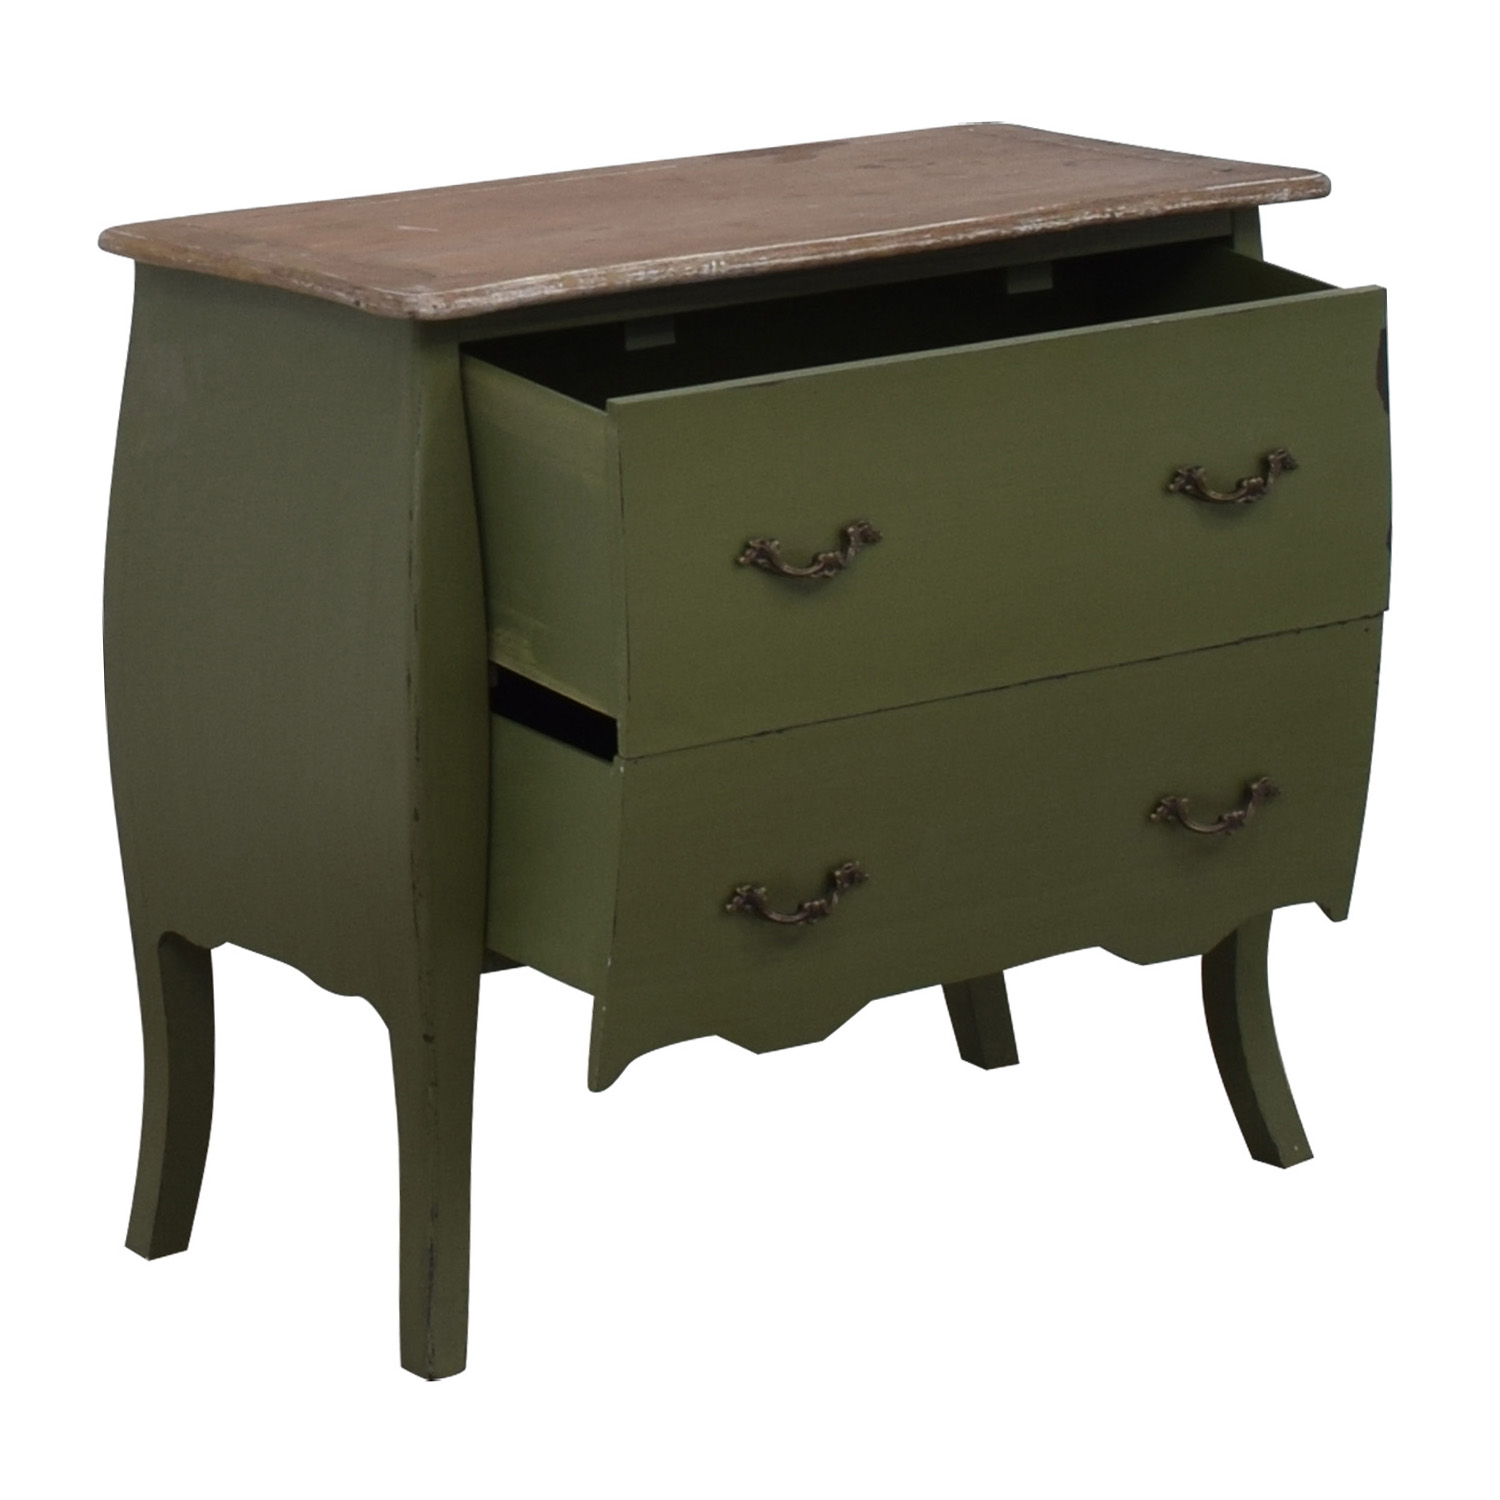 - 54% OFF - HomeGoods HomeGoods Green Two-Drawer Accent Table / Tables